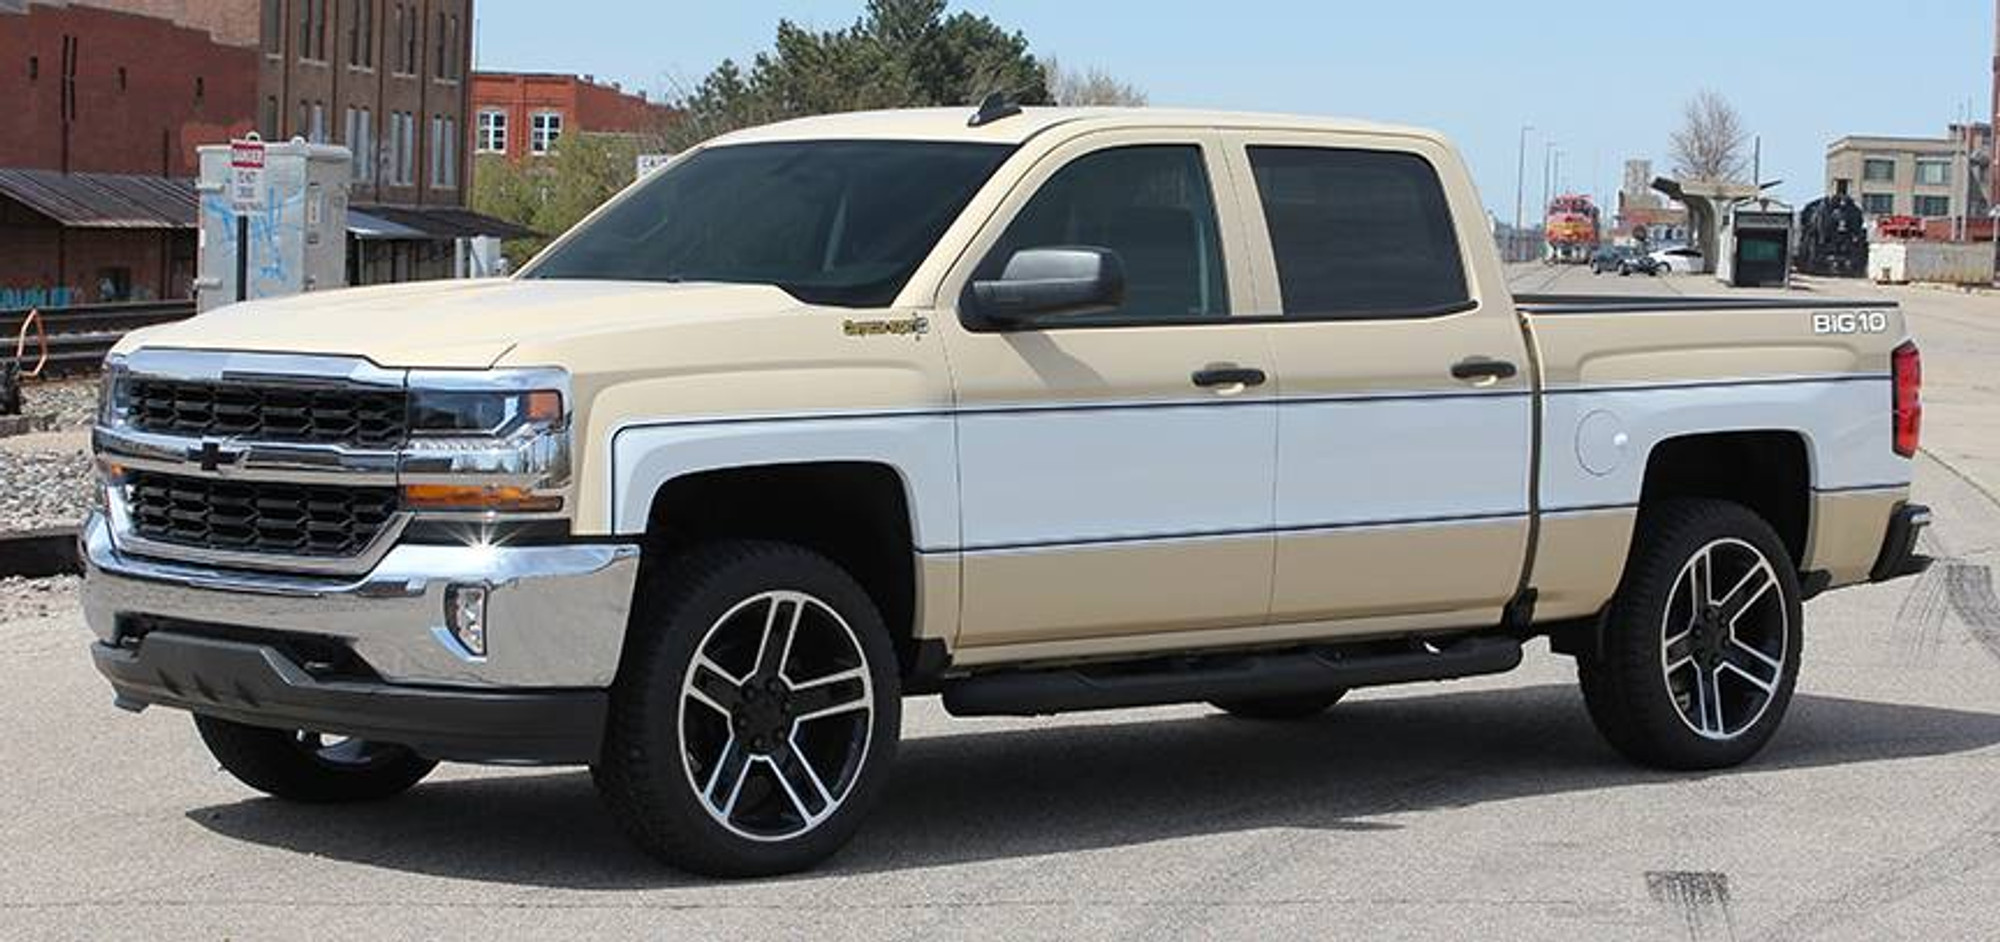 small resolution of 2014 2019 chevy silverado retro cheyenne graphic kit angled front side view